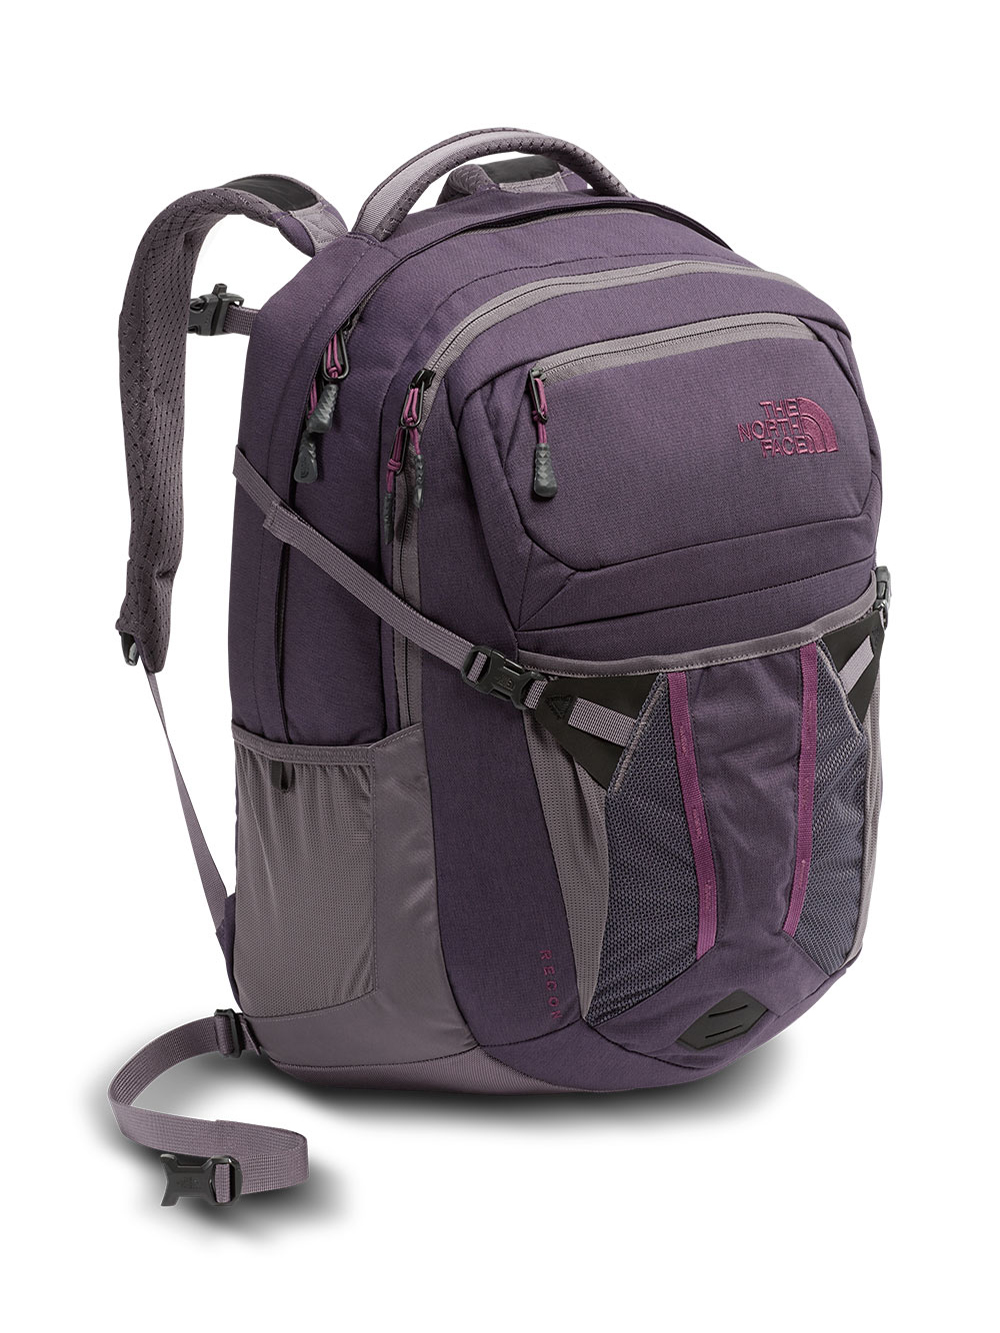 a5e42c672 Women's Recon Backpack by The North Face in Dark eggplant purple ...